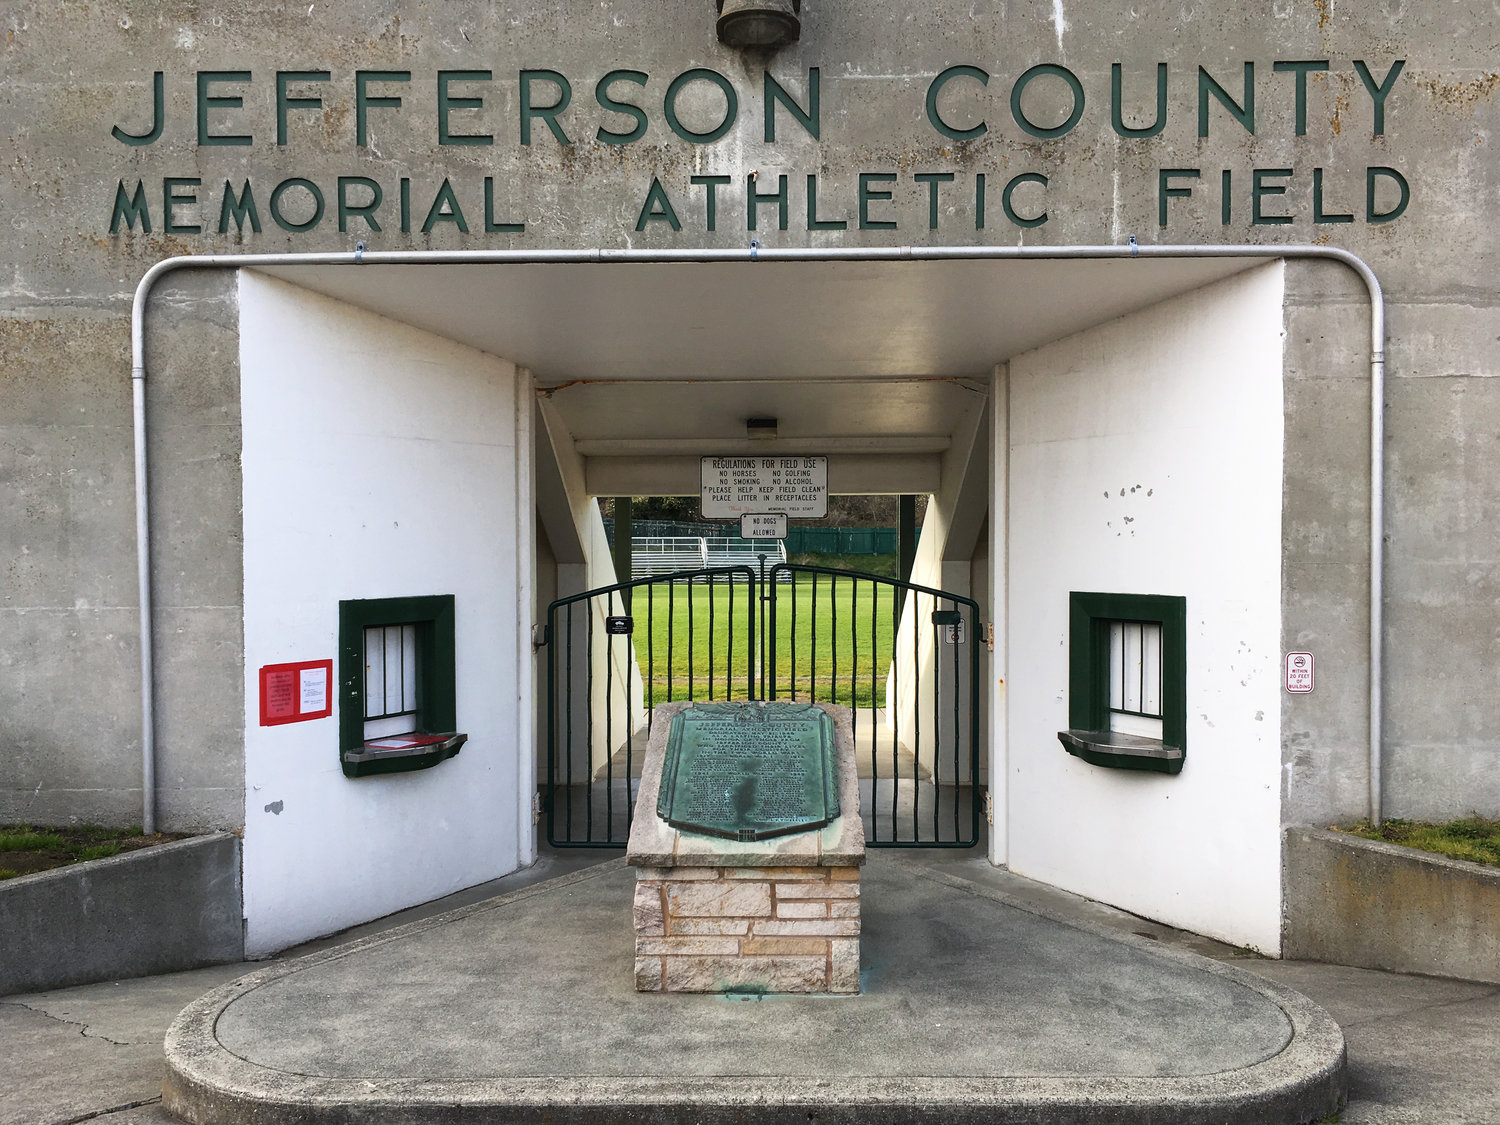 The Jefferson County Parks and Recreation is planning to reinstall the Memorial Field plaque, which was returned to Port Townsend Police Department on May 23. Parks and Recreation Director Matt Tyler said they are planning to reinstall the plaque with more security to prevent it from getting stolen again.